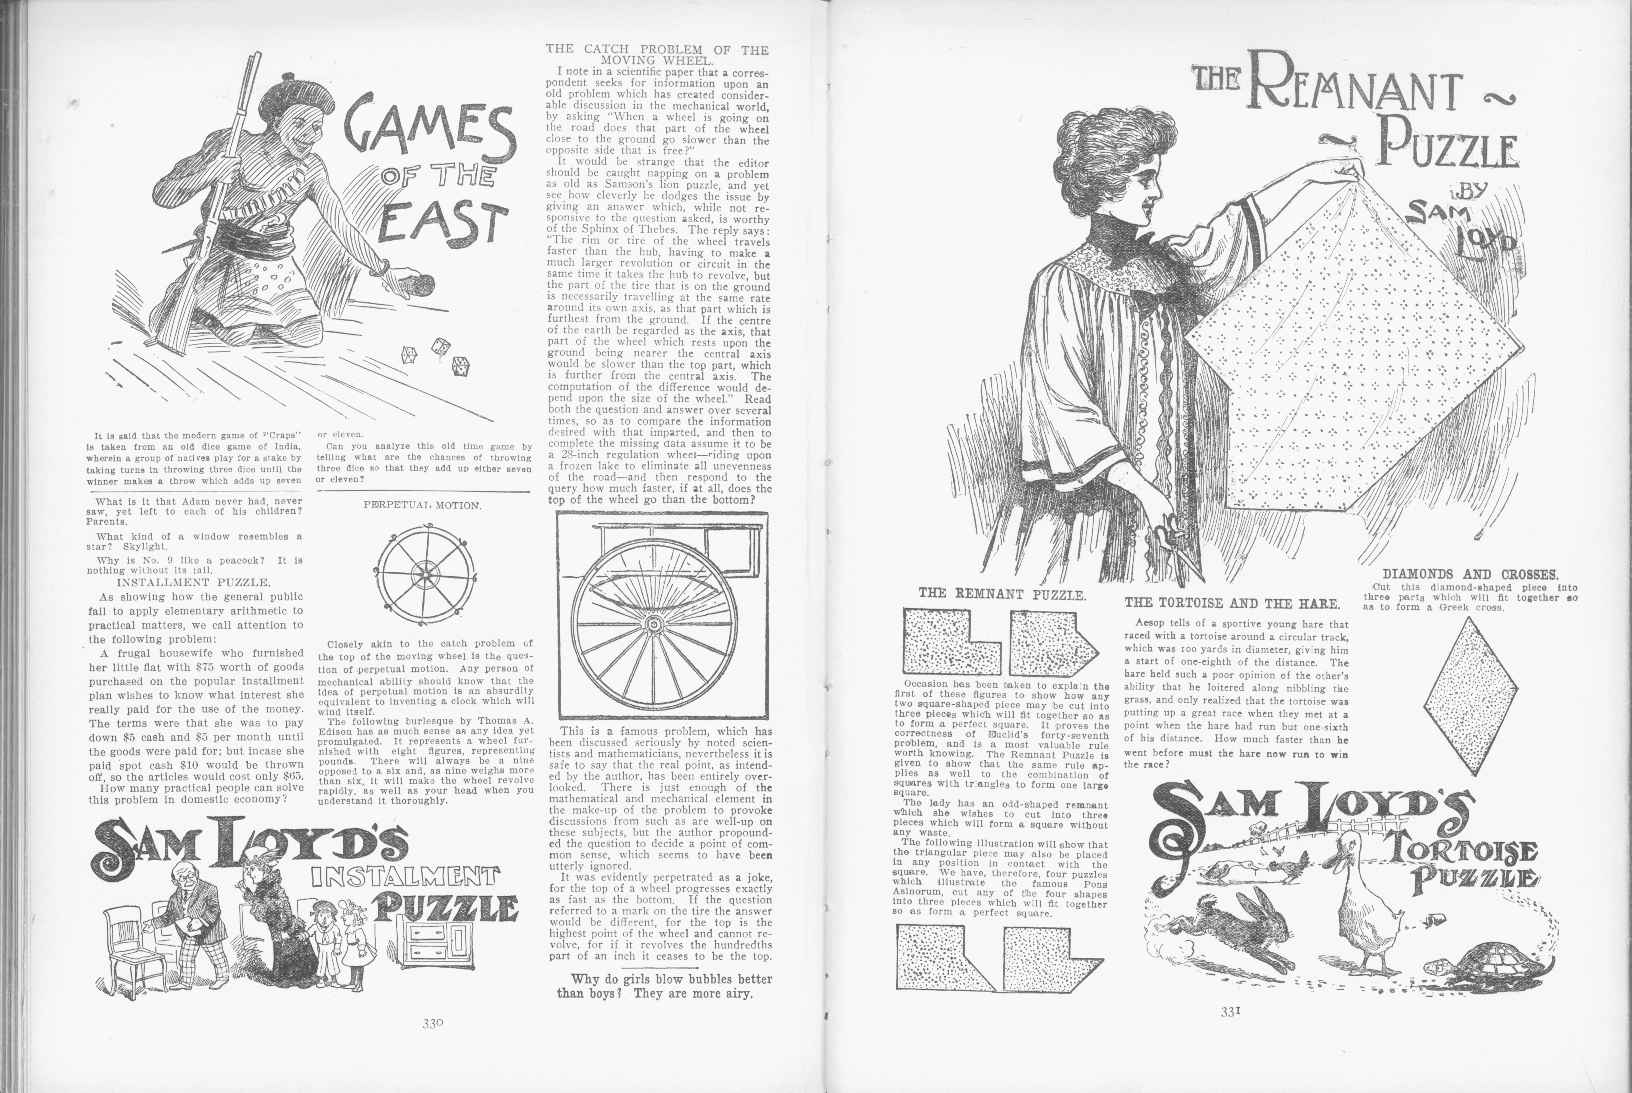 Sam Loyd - Cyclopedia of Puzzles - page 330-331